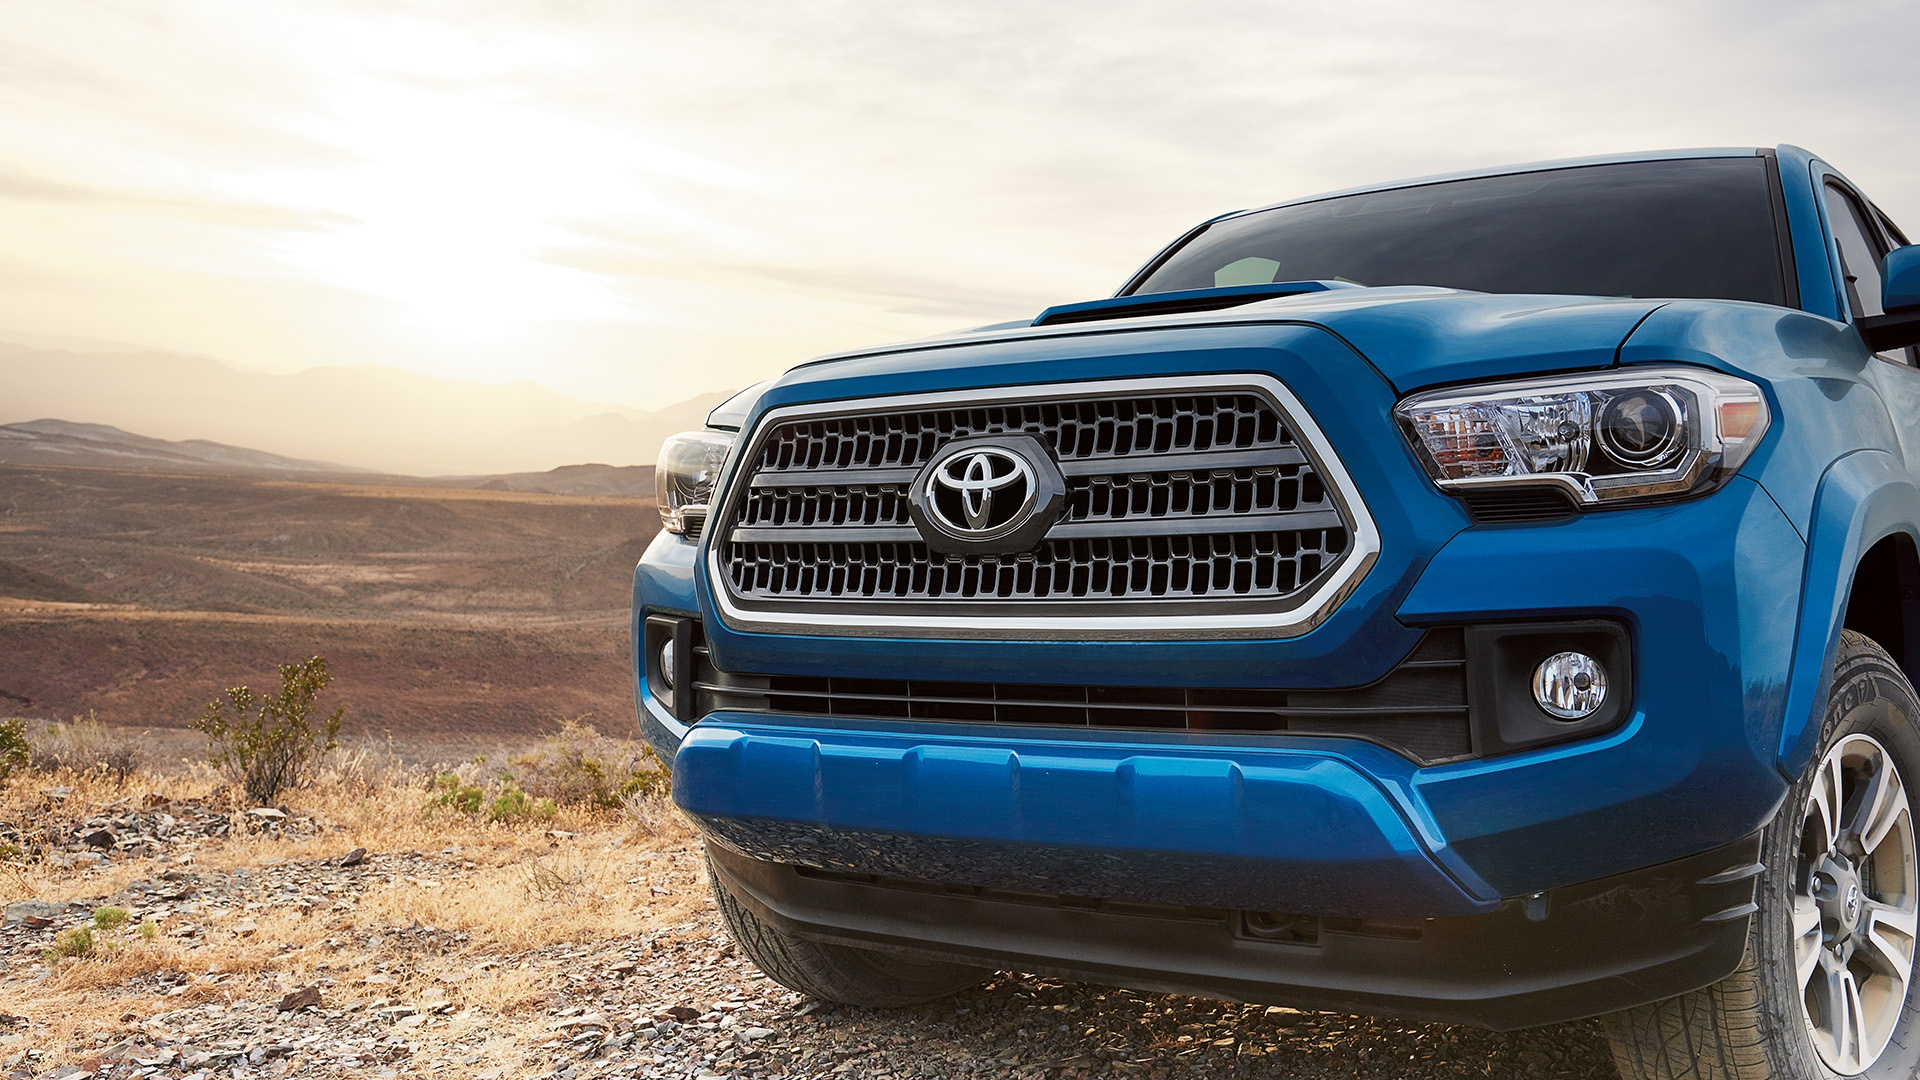 Younger toyota is excited to tell everyone from hagerstown md martinsburg wv chambersburg pa and frederick md that the 2017 toyota tacoma is now here